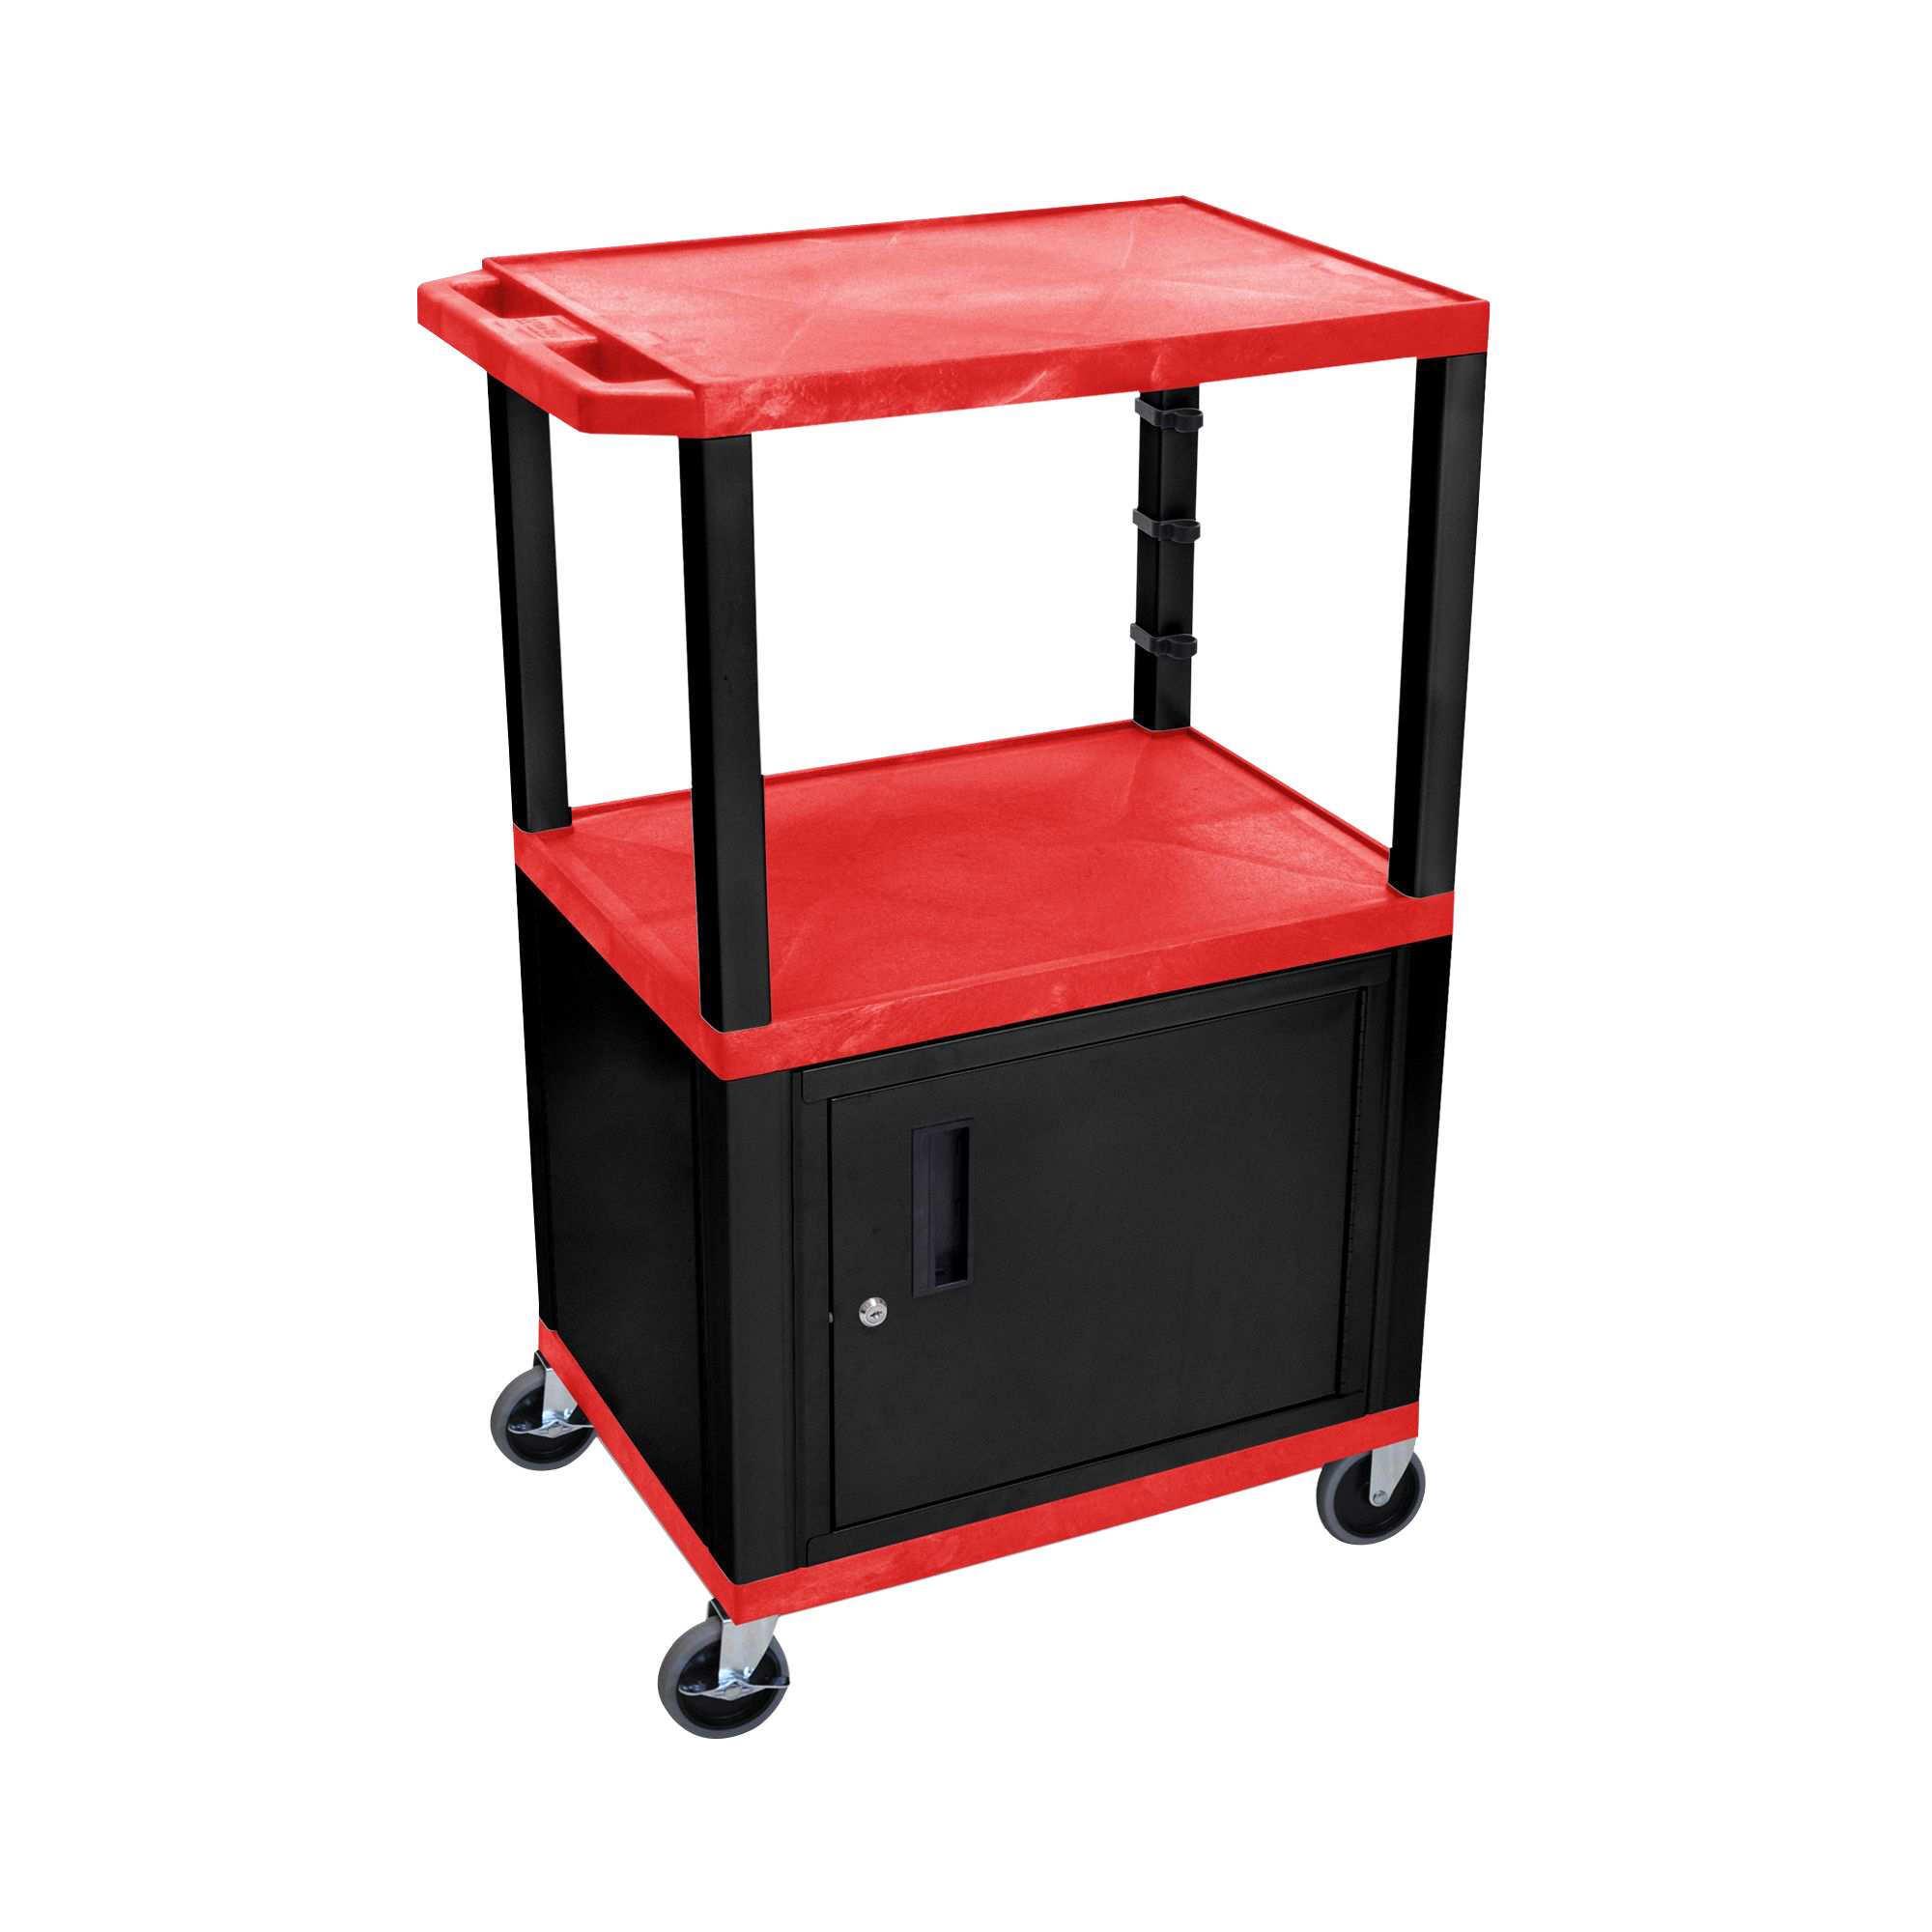 Offex Red Cart with Black Cabinet 24 W x 18 D x 42.5 H